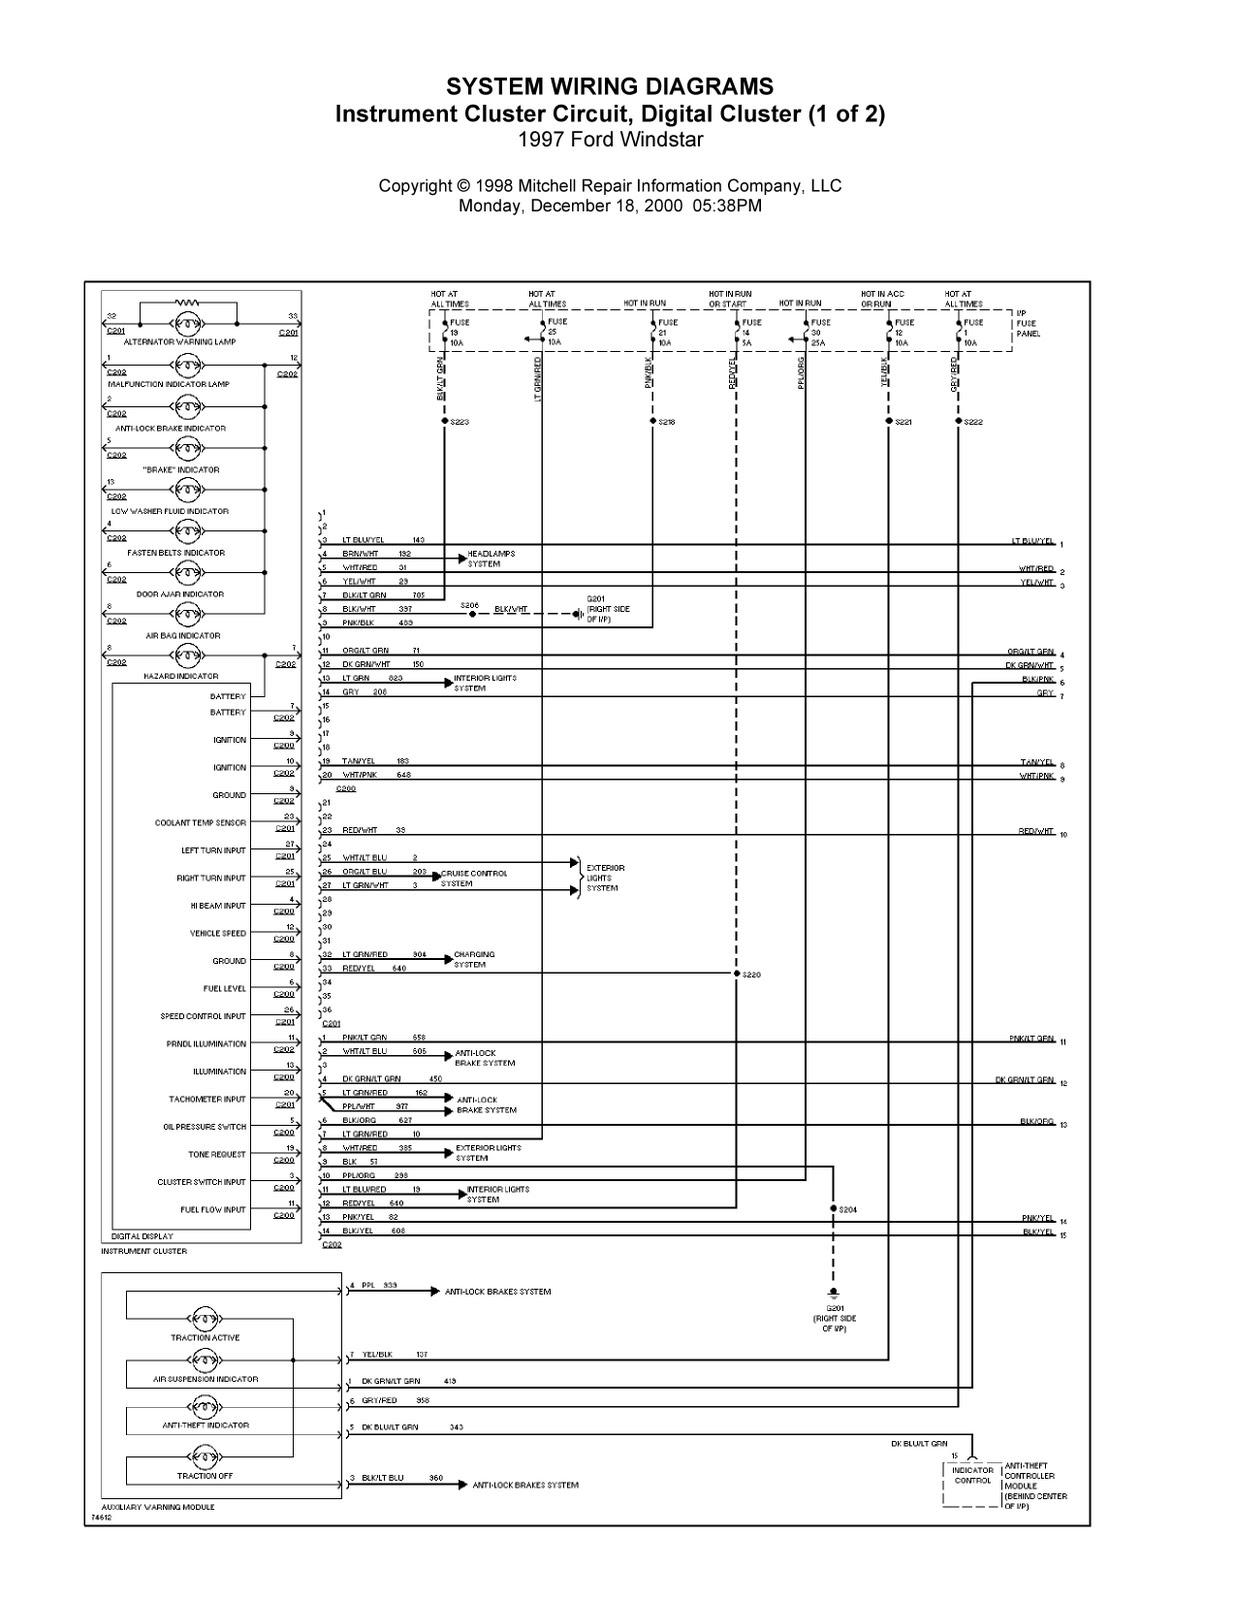 hight resolution of 1997 ford windstar complete system wiring diagrams 2001 ford windstar electrical diagram 2002 ford windstar electrical